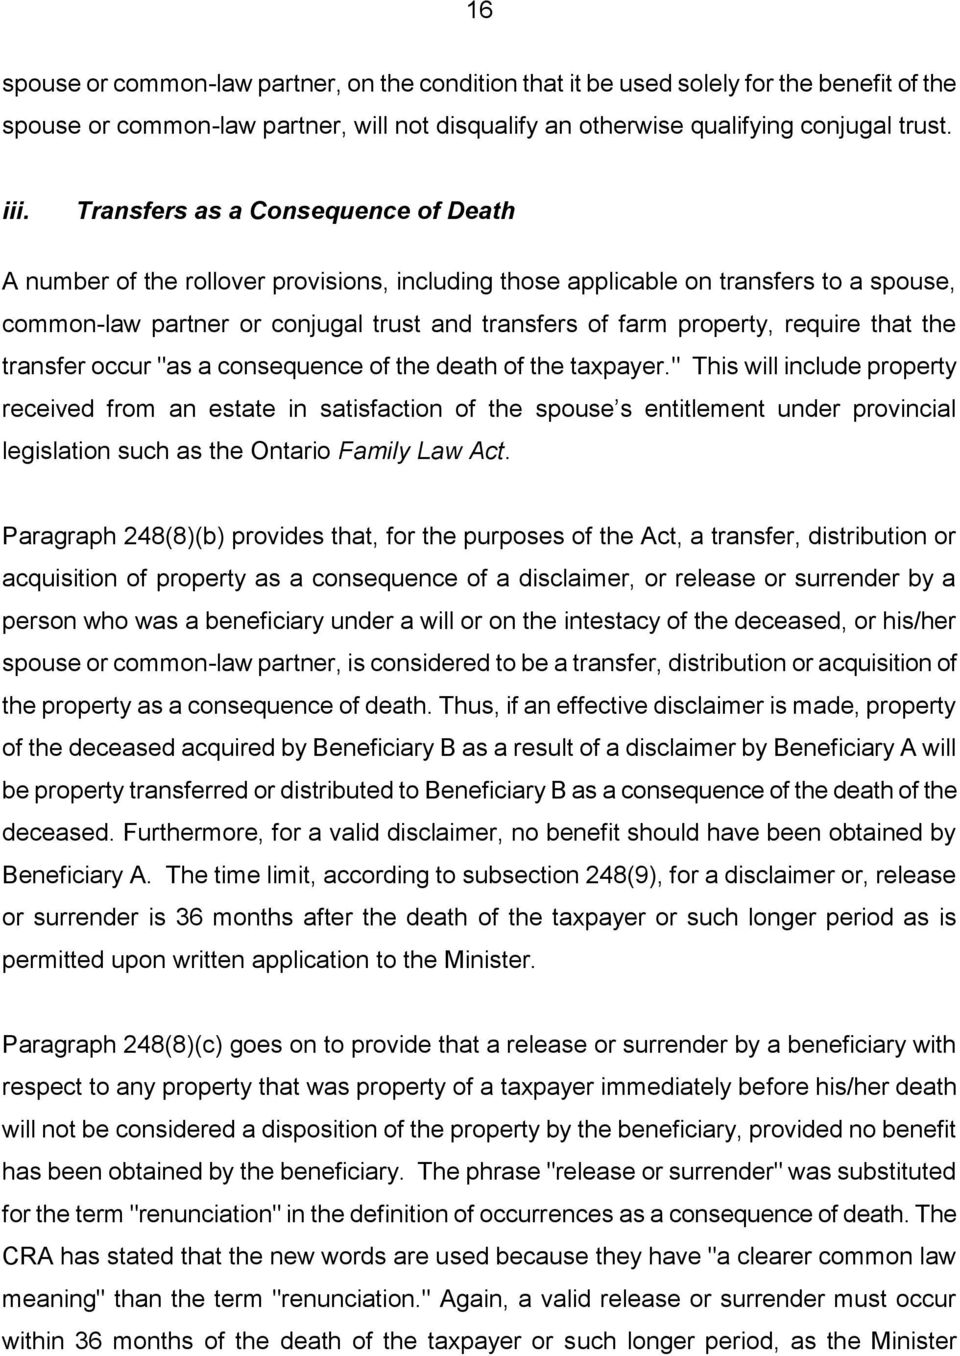 taxation on death: deemed dispositions and post mortem planning